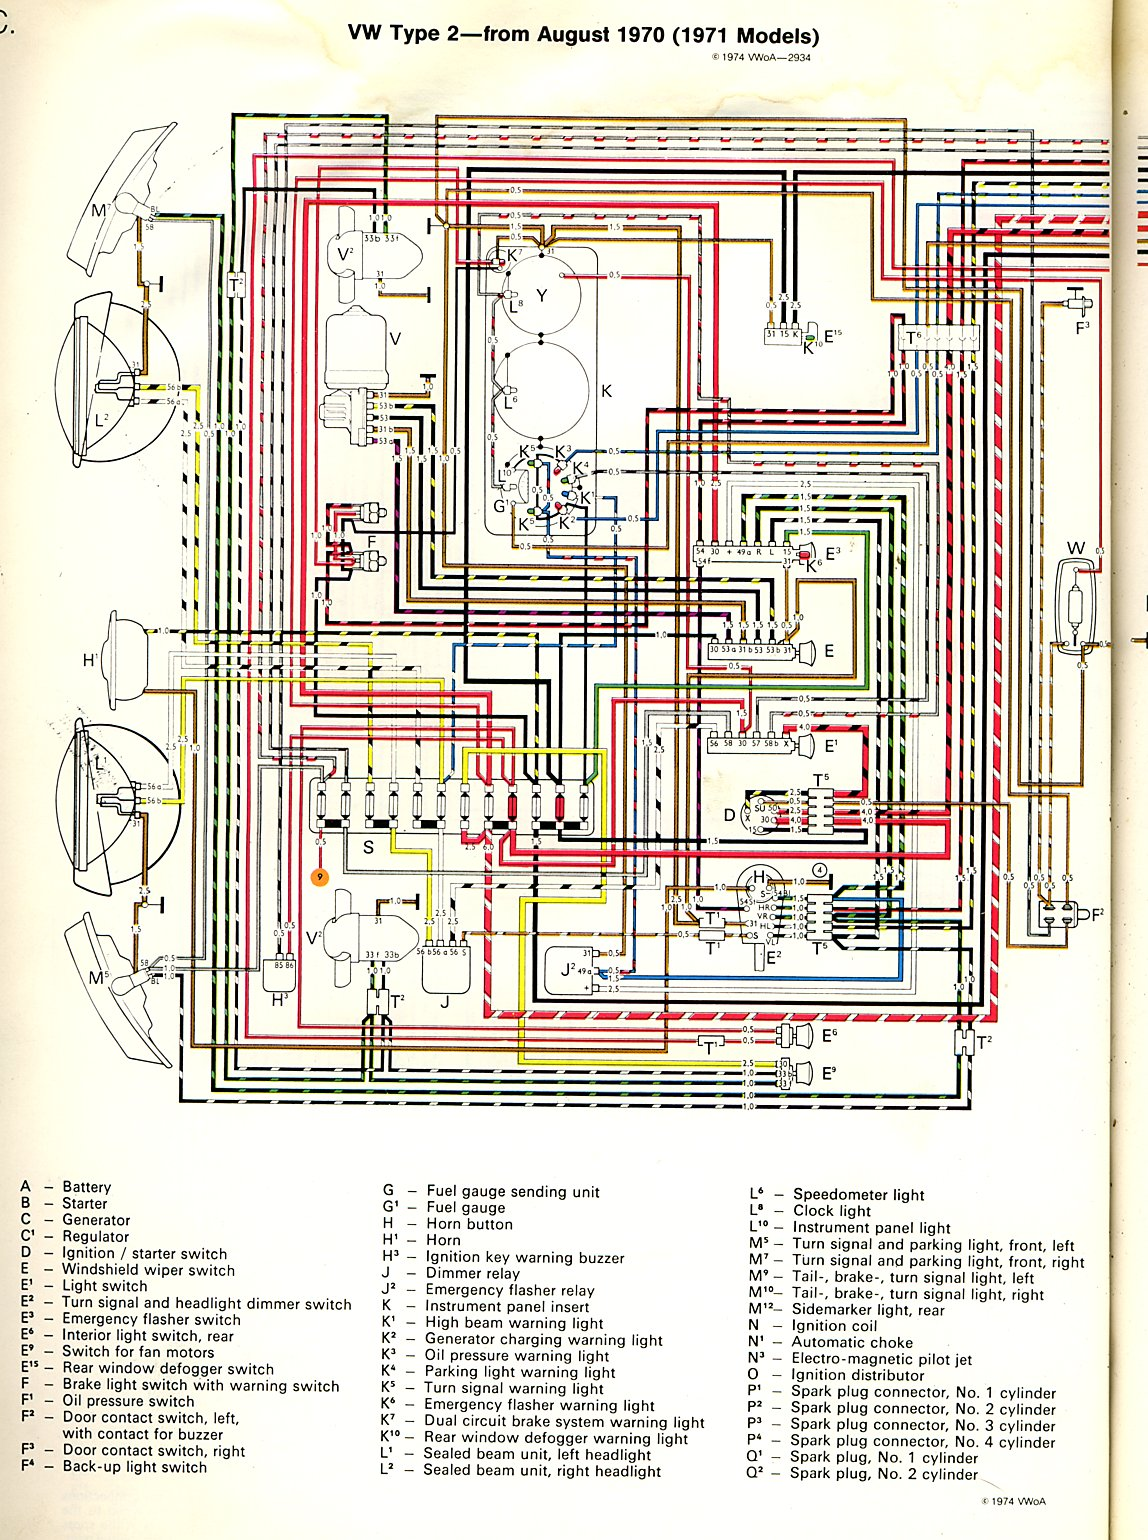 1970 Buick Skylark Wiring Diagram Library Of Diagrams For 1968 Amc 1971 Gs Basic U2022 Rh Dev Spokeapartments Com 1972 Vega